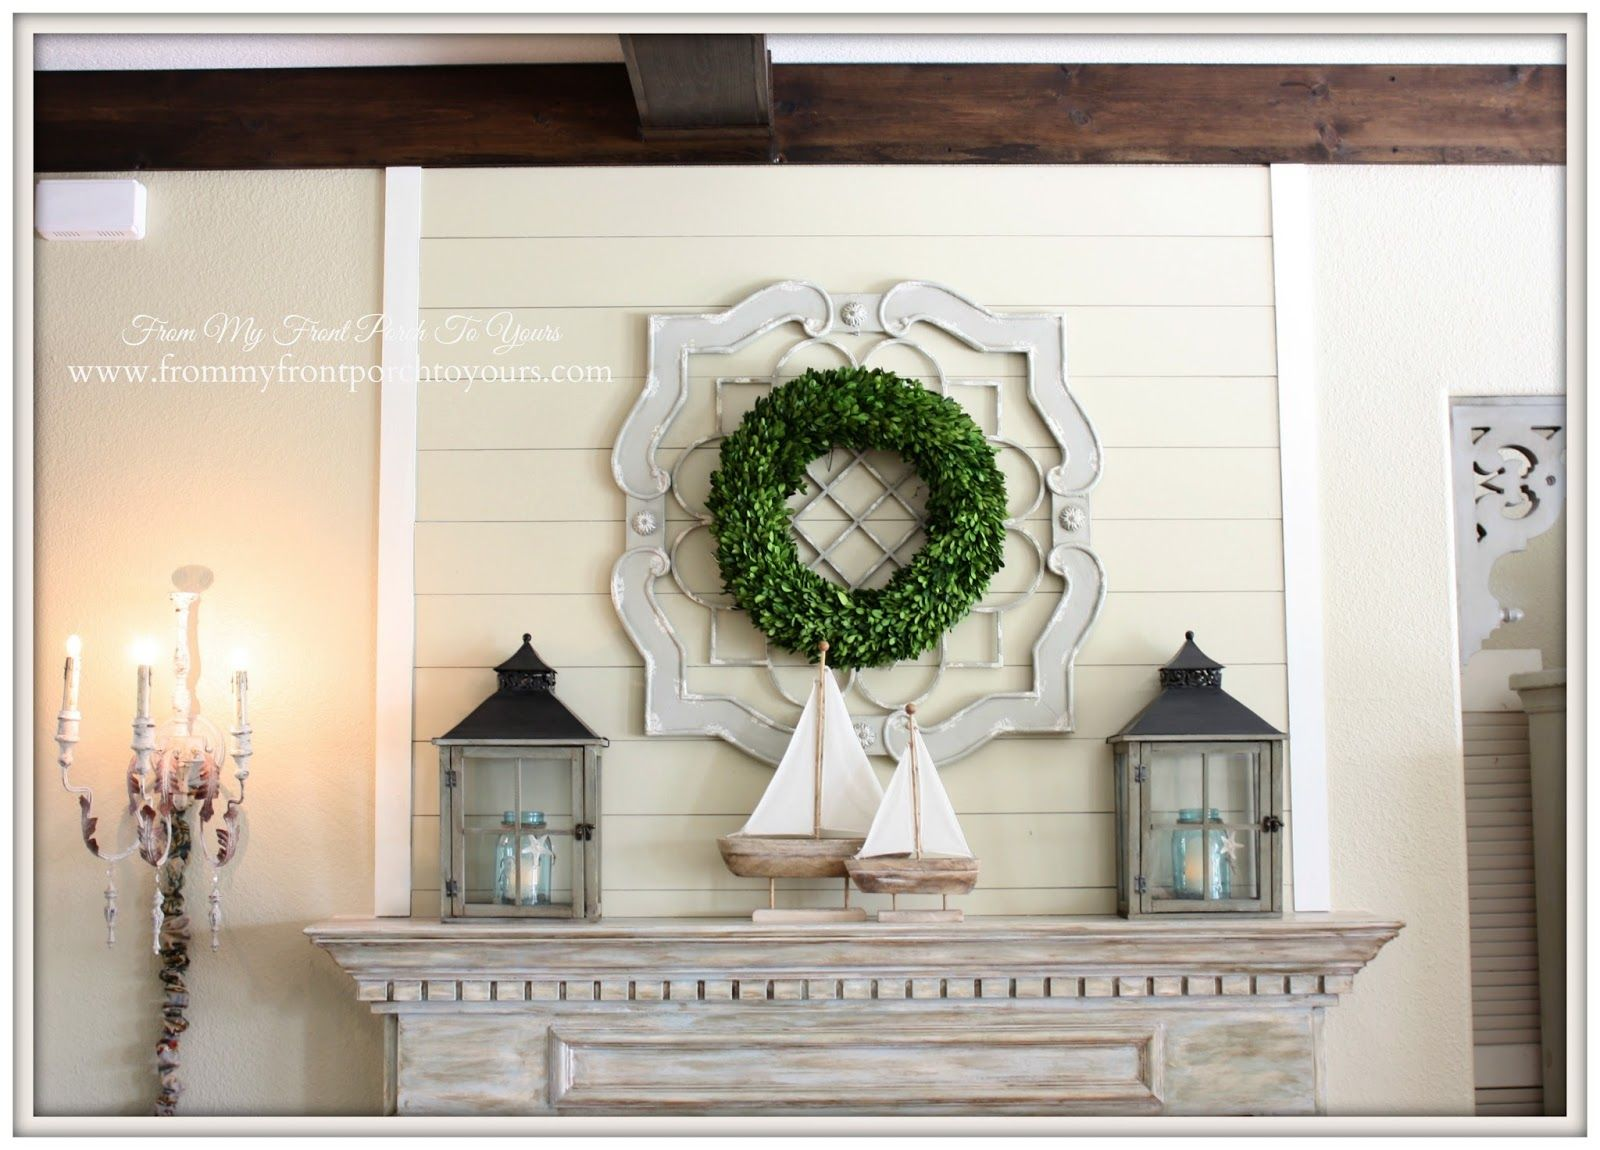 Simple Nautical Fireplace Mantel Display From My Front Porch To Yours